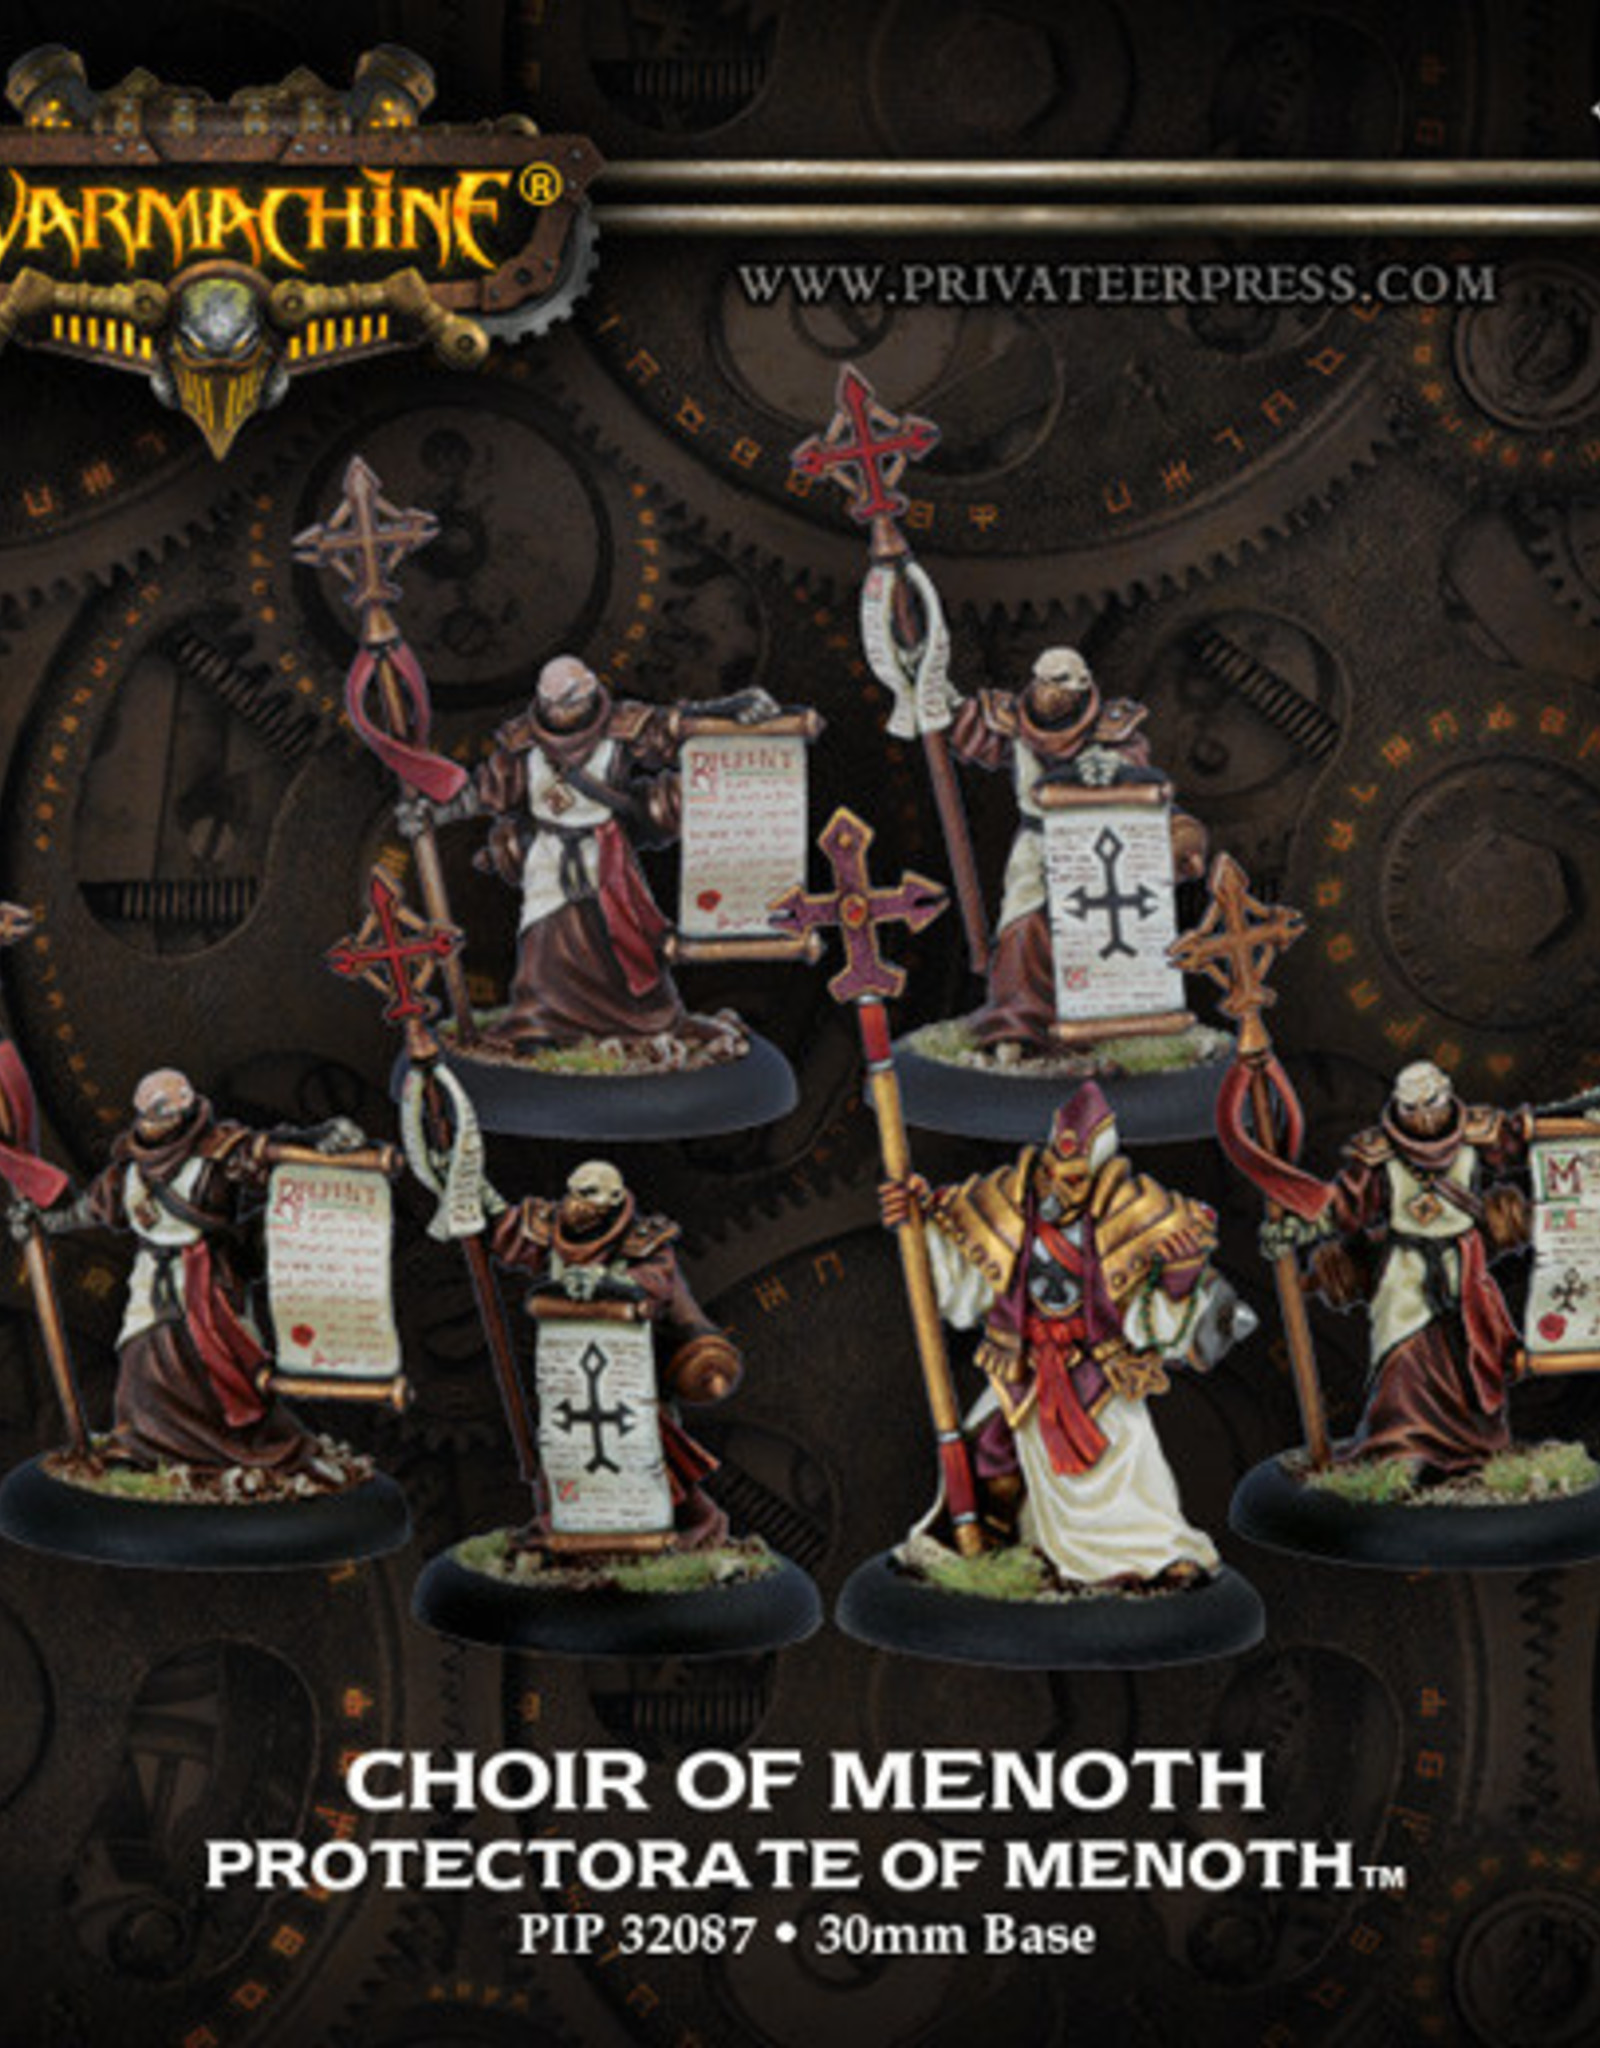 Warmachine Protectorate - Choir of Menoth